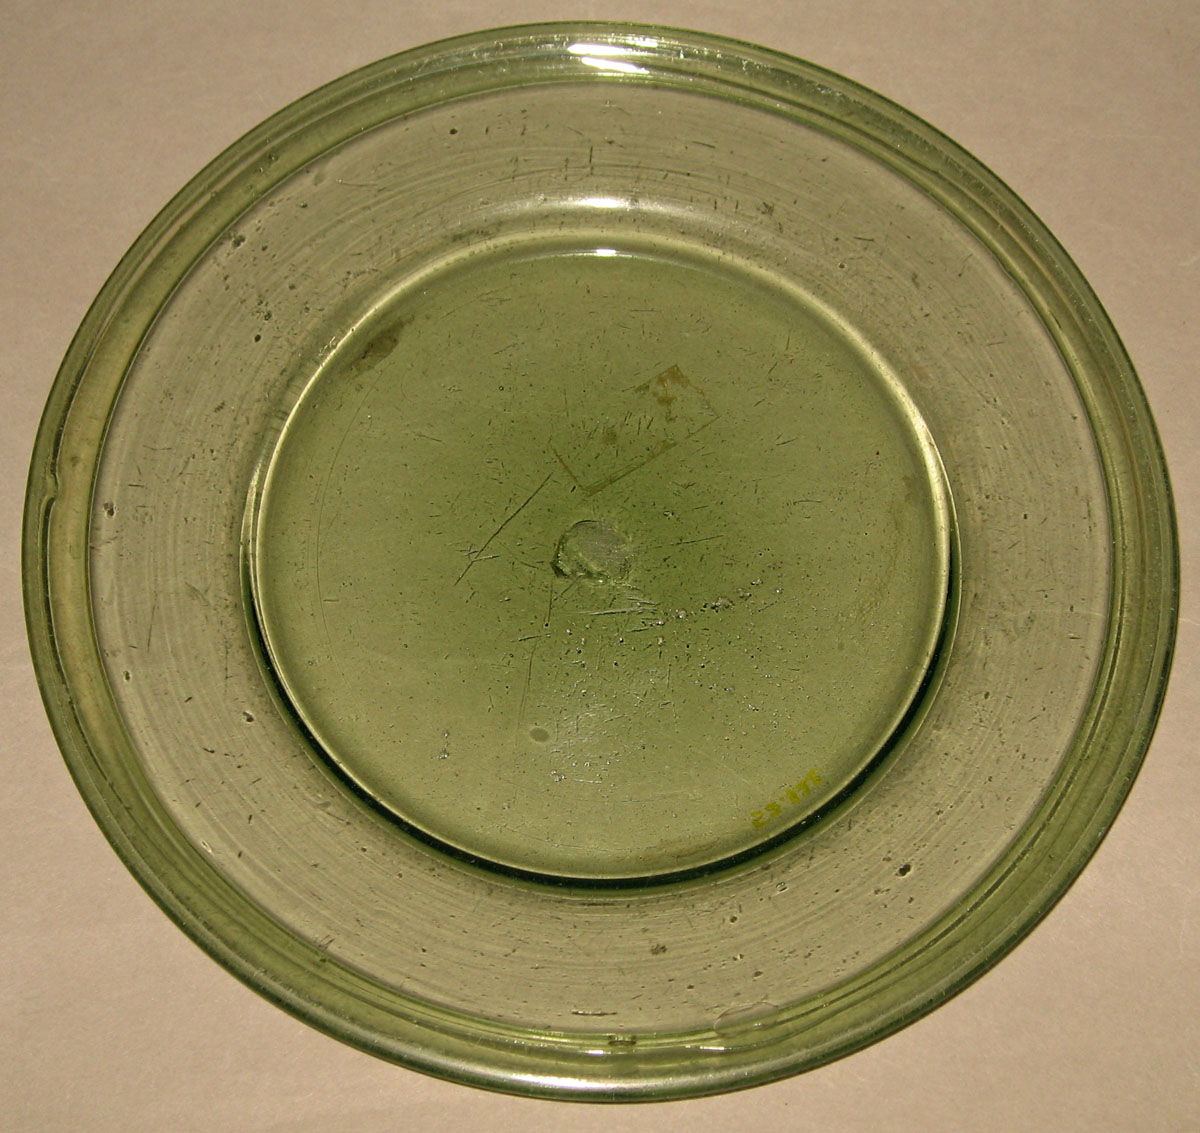 1952.0122 Glass plate